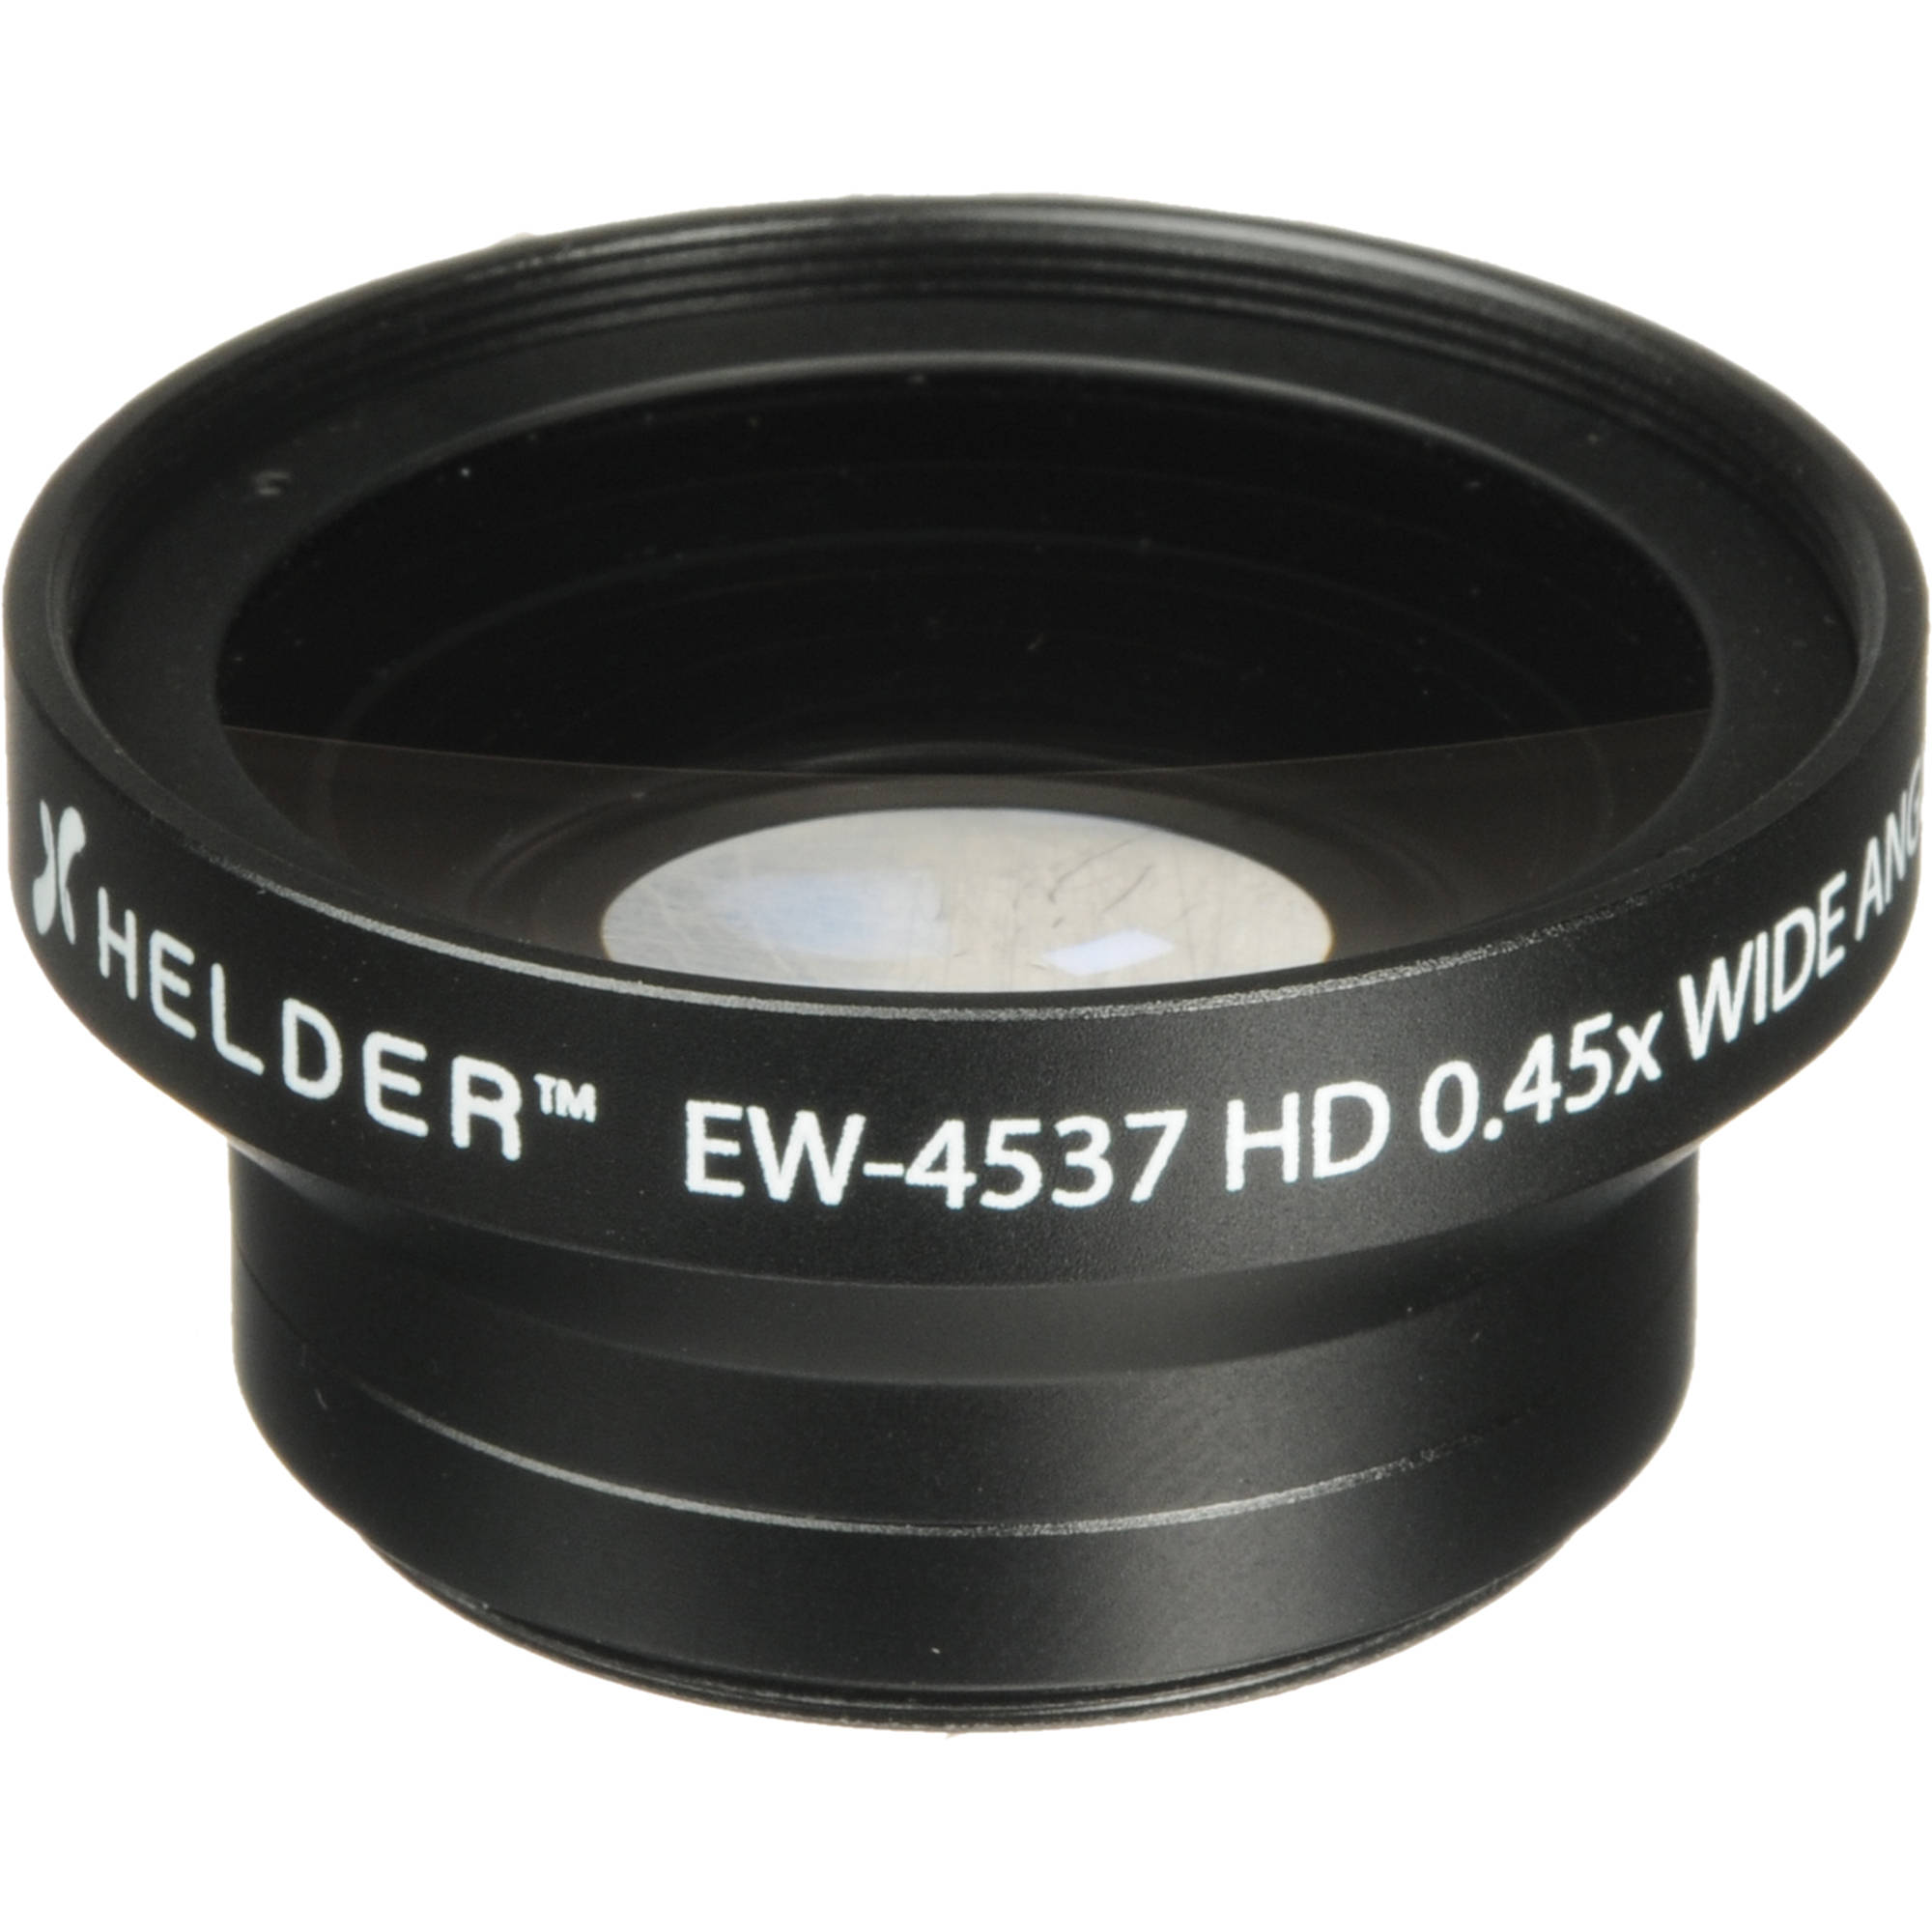 5d3d8b8835fa6c Helder EW-4537 37mm HD 0.45x Wide Angle Conversion Lens EW-4537